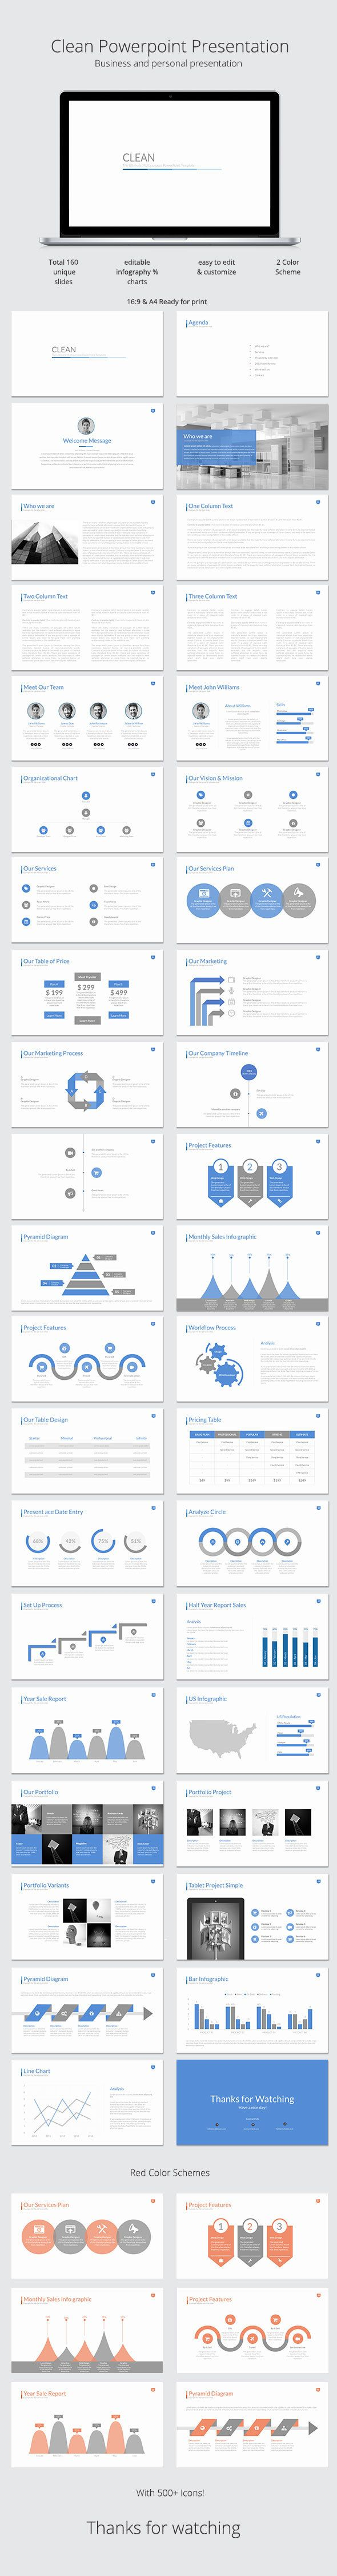 Coolmathgamesus  Seductive  Ideas About Powerpoint Presentations On Pinterest With Magnificent Clean Powerpoint Template With Archaic Rubric For Powerpoint Project Also Puzzle Pieces In Powerpoint In Addition Powerpoint Slide Designs Free Download And Prezi And Powerpoint As Well As Hypothermia Powerpoint Additionally Powerpoint Video Files From Pinterestcom With Coolmathgamesus  Magnificent  Ideas About Powerpoint Presentations On Pinterest With Archaic Clean Powerpoint Template And Seductive Rubric For Powerpoint Project Also Puzzle Pieces In Powerpoint In Addition Powerpoint Slide Designs Free Download From Pinterestcom